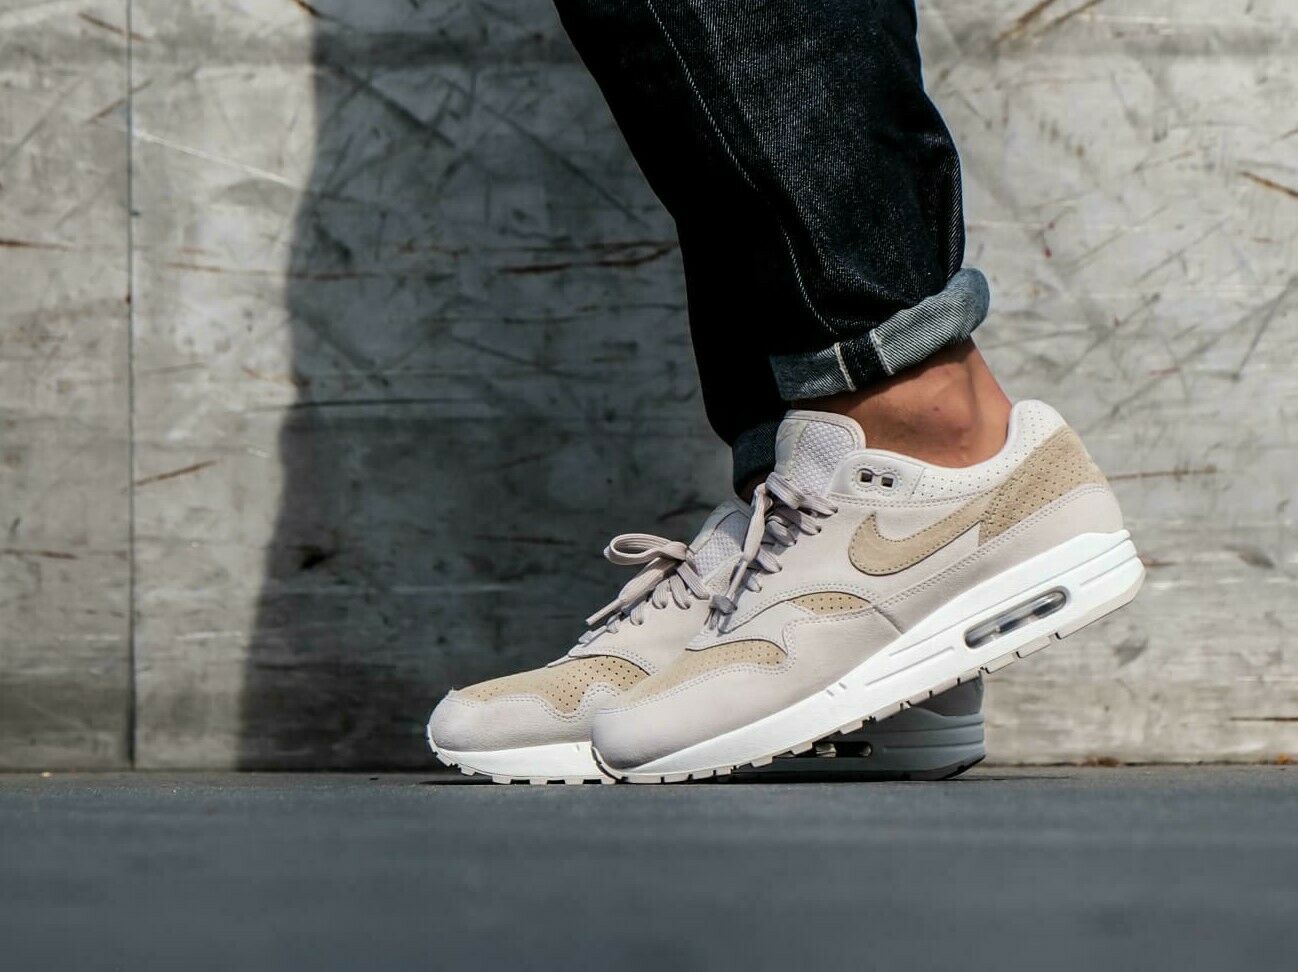 NIKE AIR MAX 1 PREMIUM. Men's shoes. Size 13 Style 875844 004. (NO BOX LID) NEW